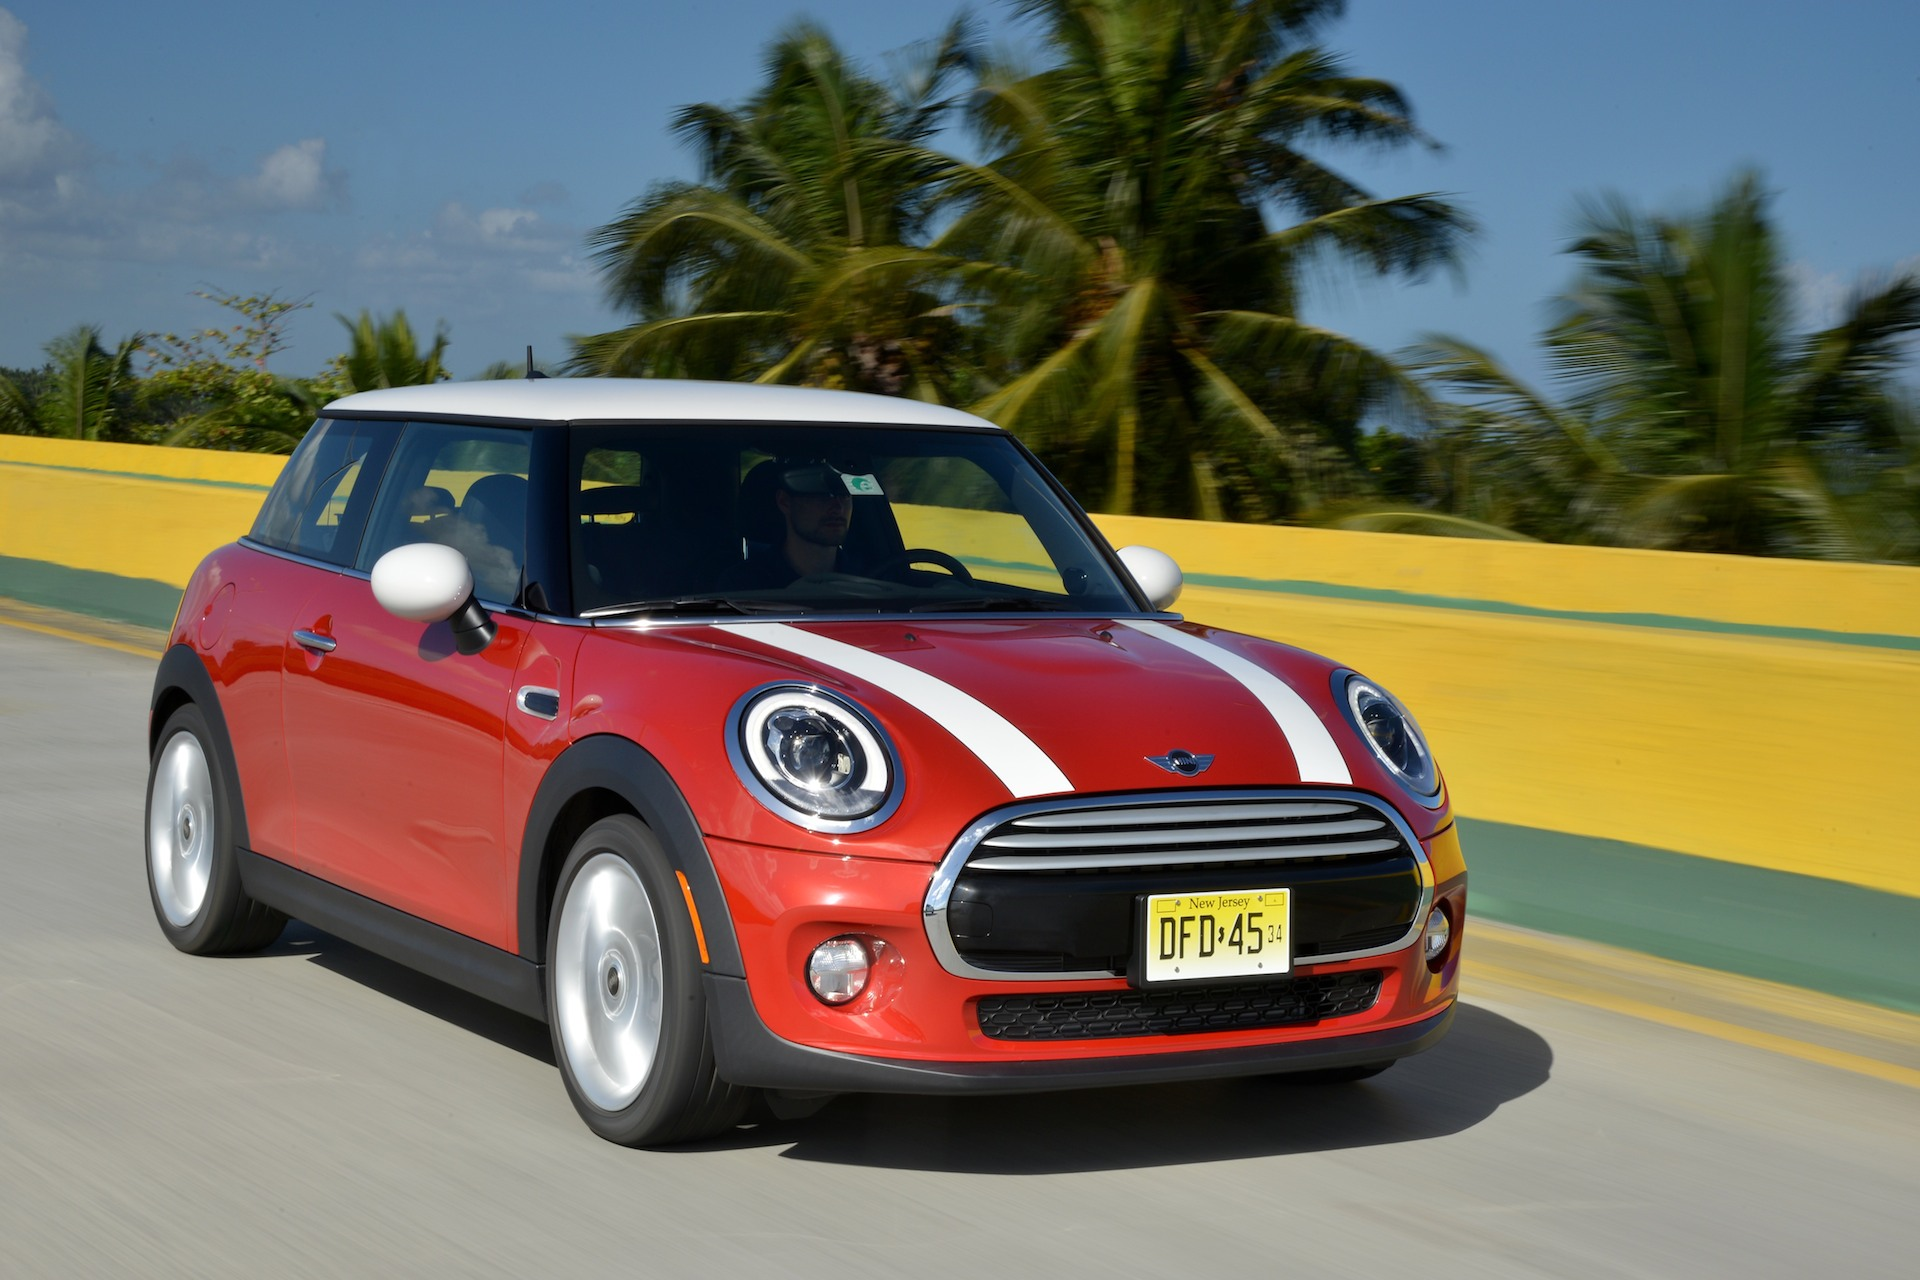 20 MINI Cooper Review, Ratings, Specs, Prices, and Photos   The ...